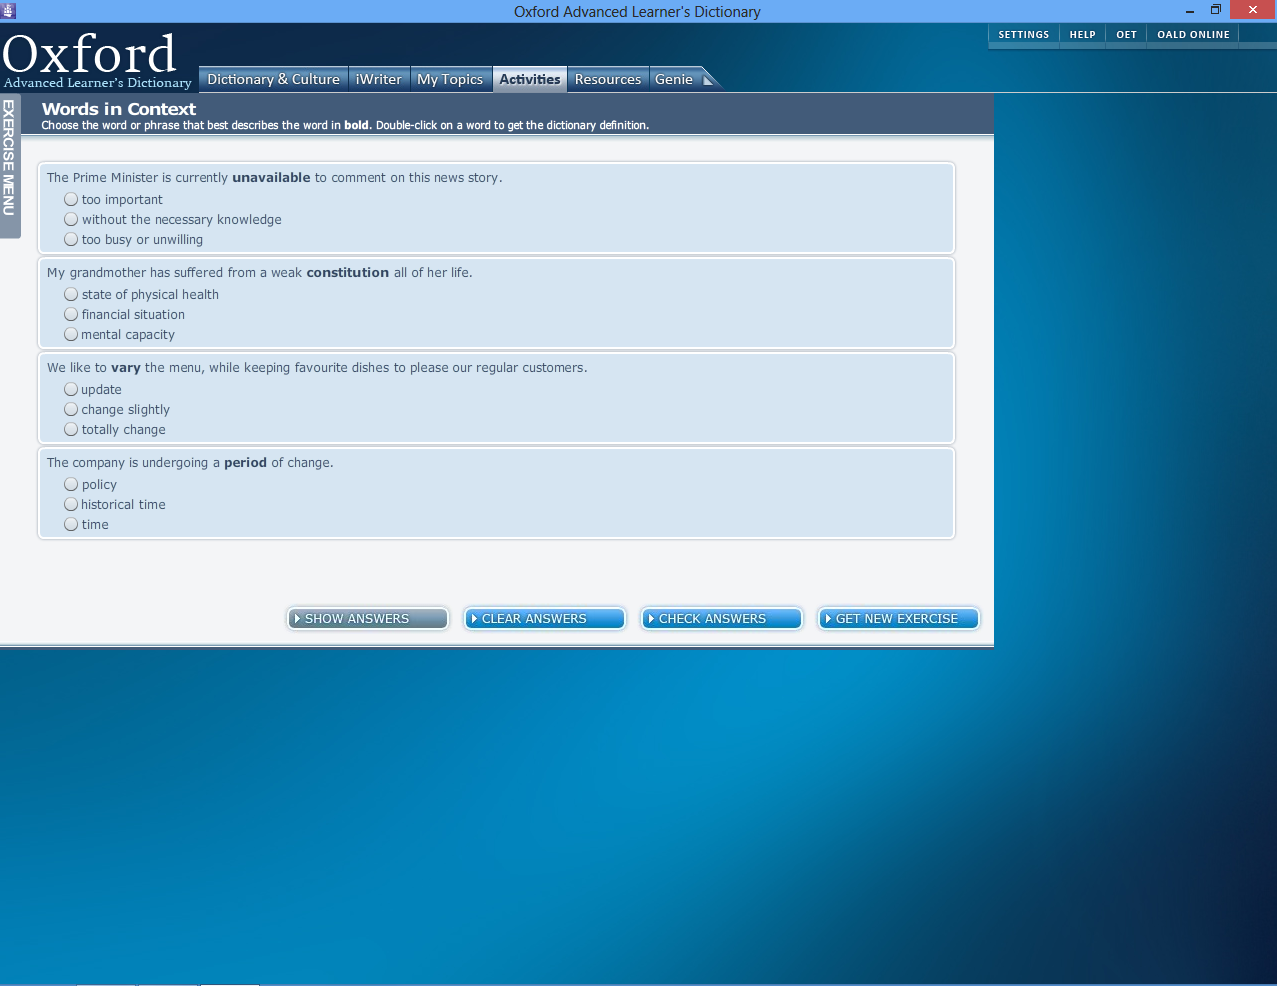 Oxford dictionary free download full version for pc